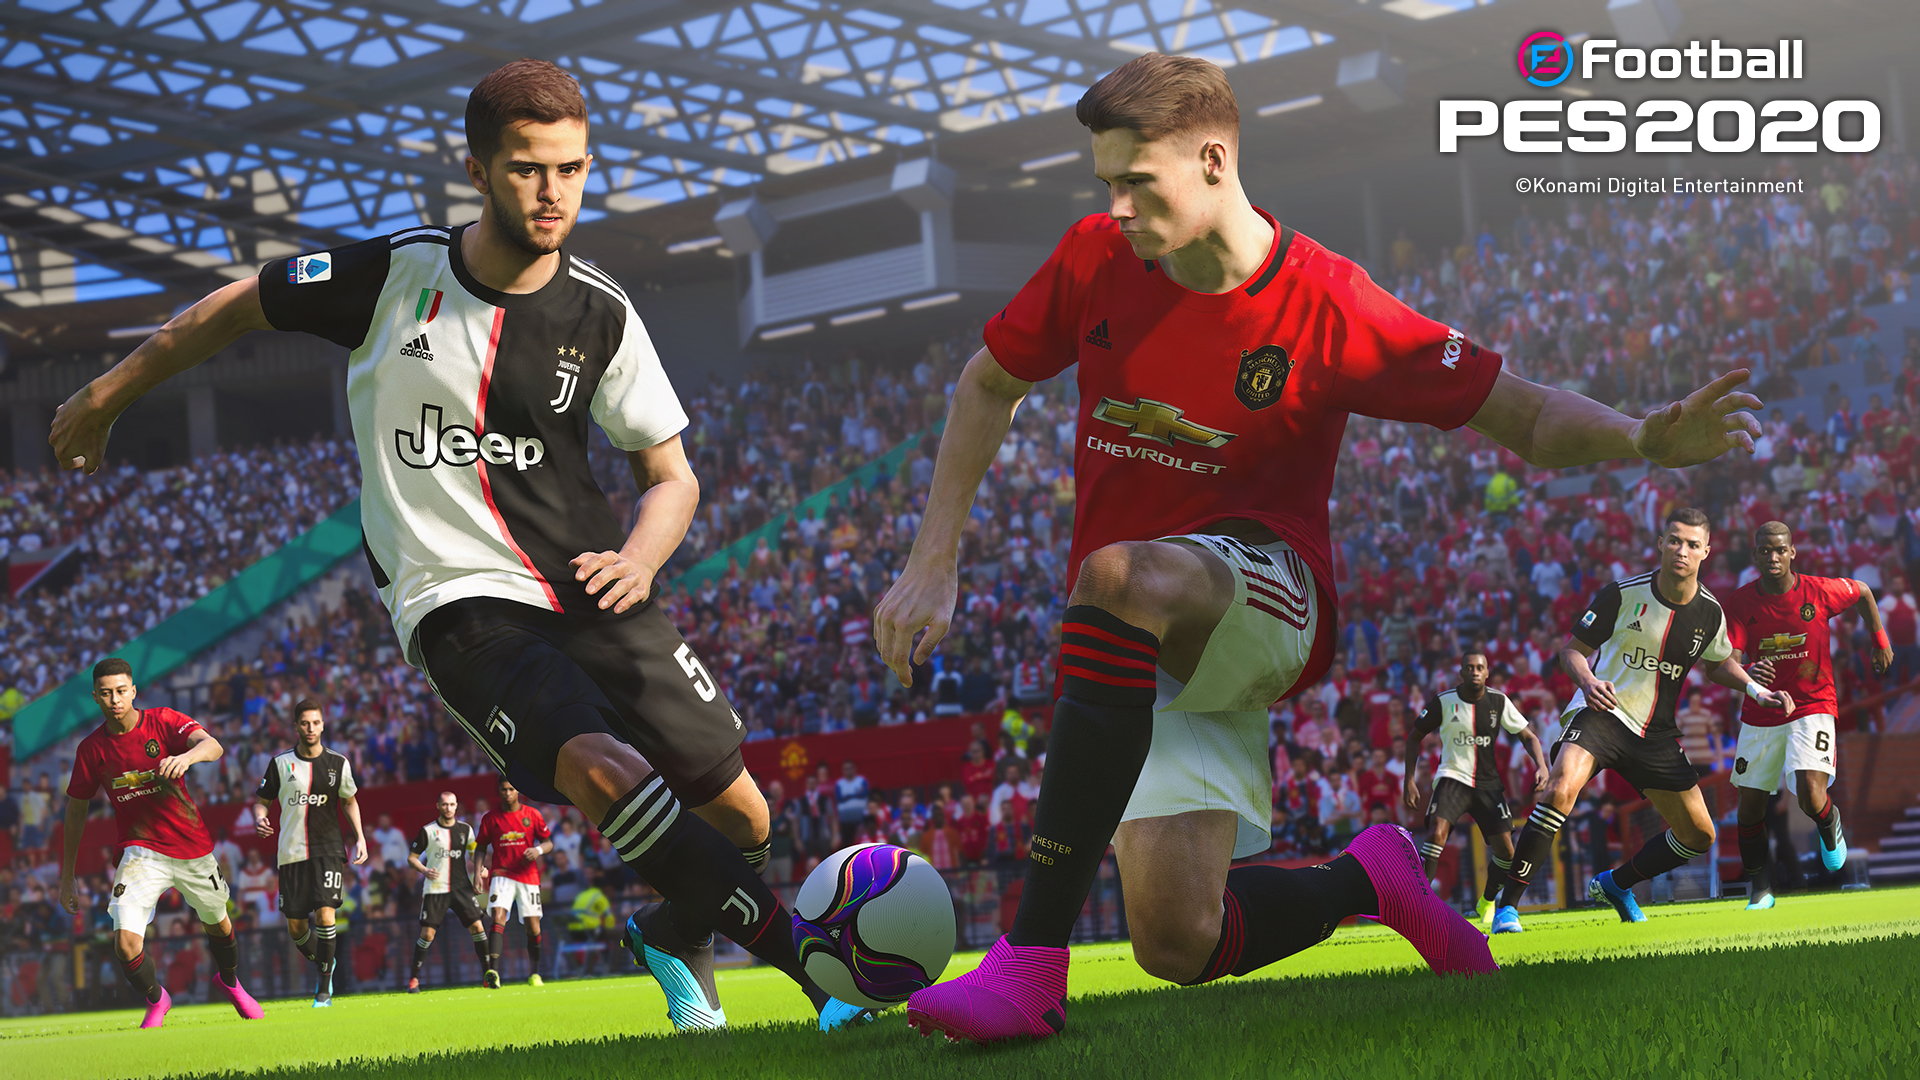 eFootball PES 2020: finalmente disponibile per PS4, Xbox One e Steam thumbnail